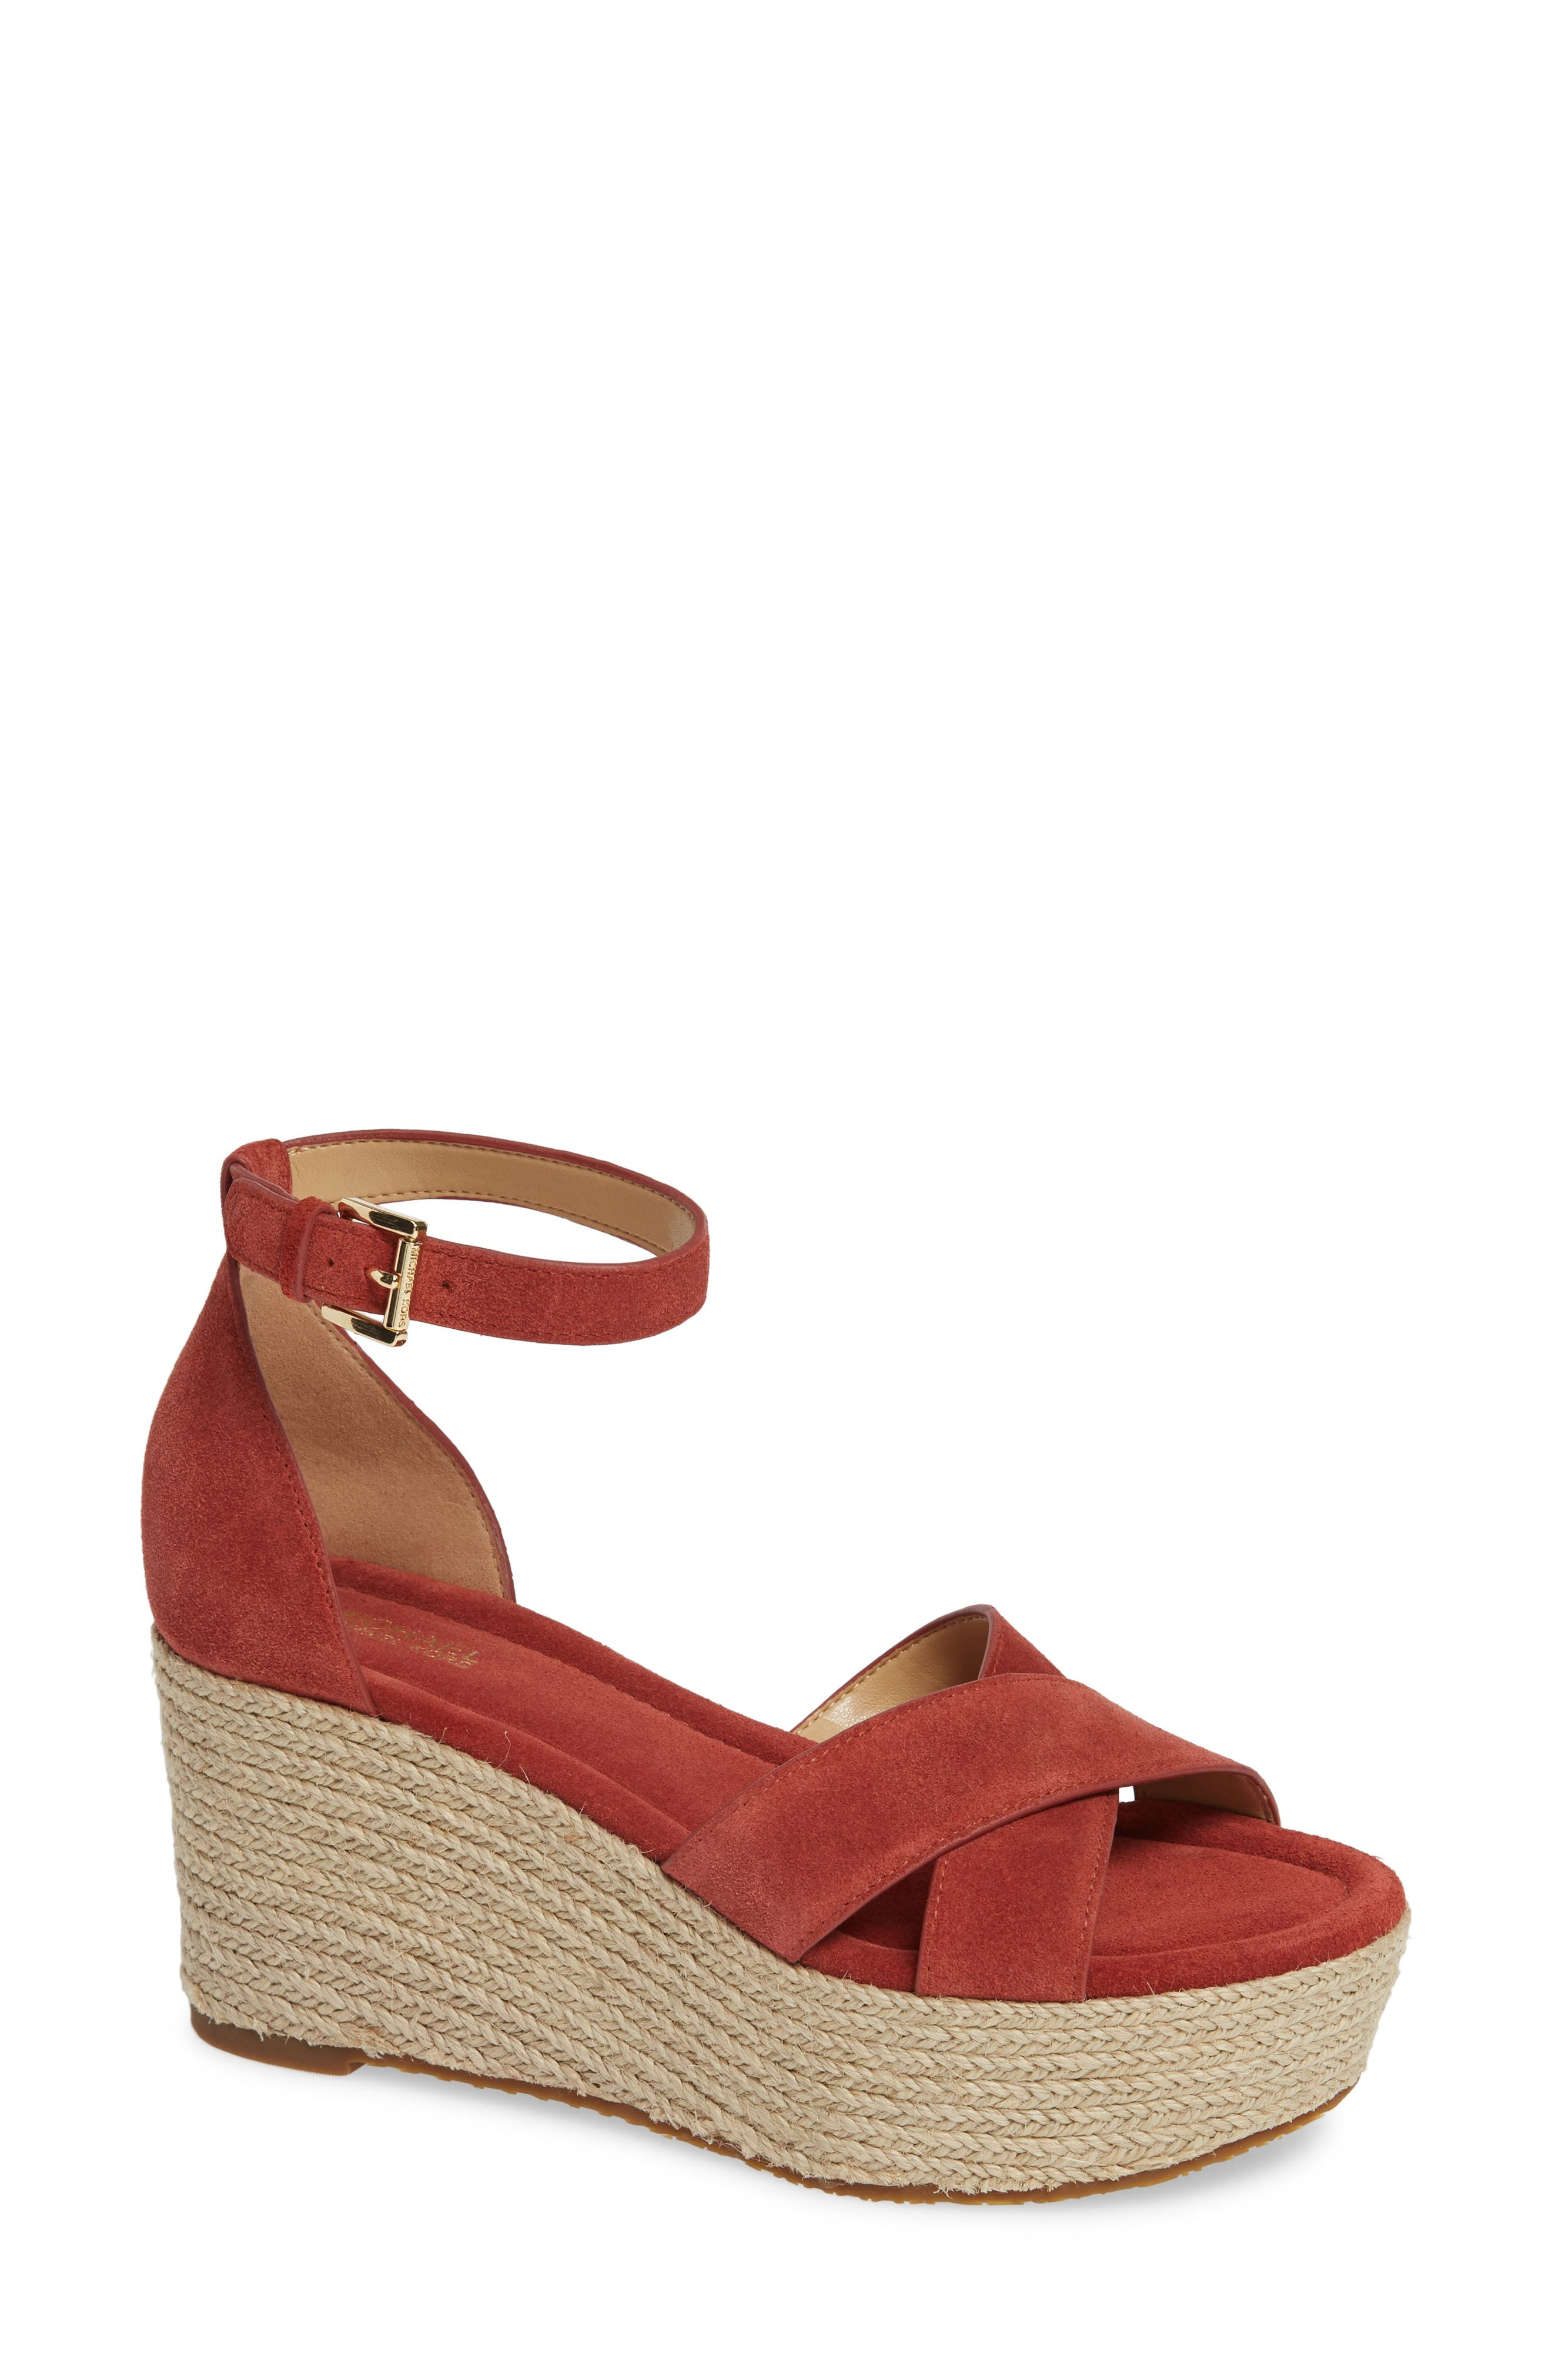 MICHAEL MICHAEL KORS, Desiree Jute Espadrille Wedge, Main thumbnail 1, color, TERRACOTTA SUEDE